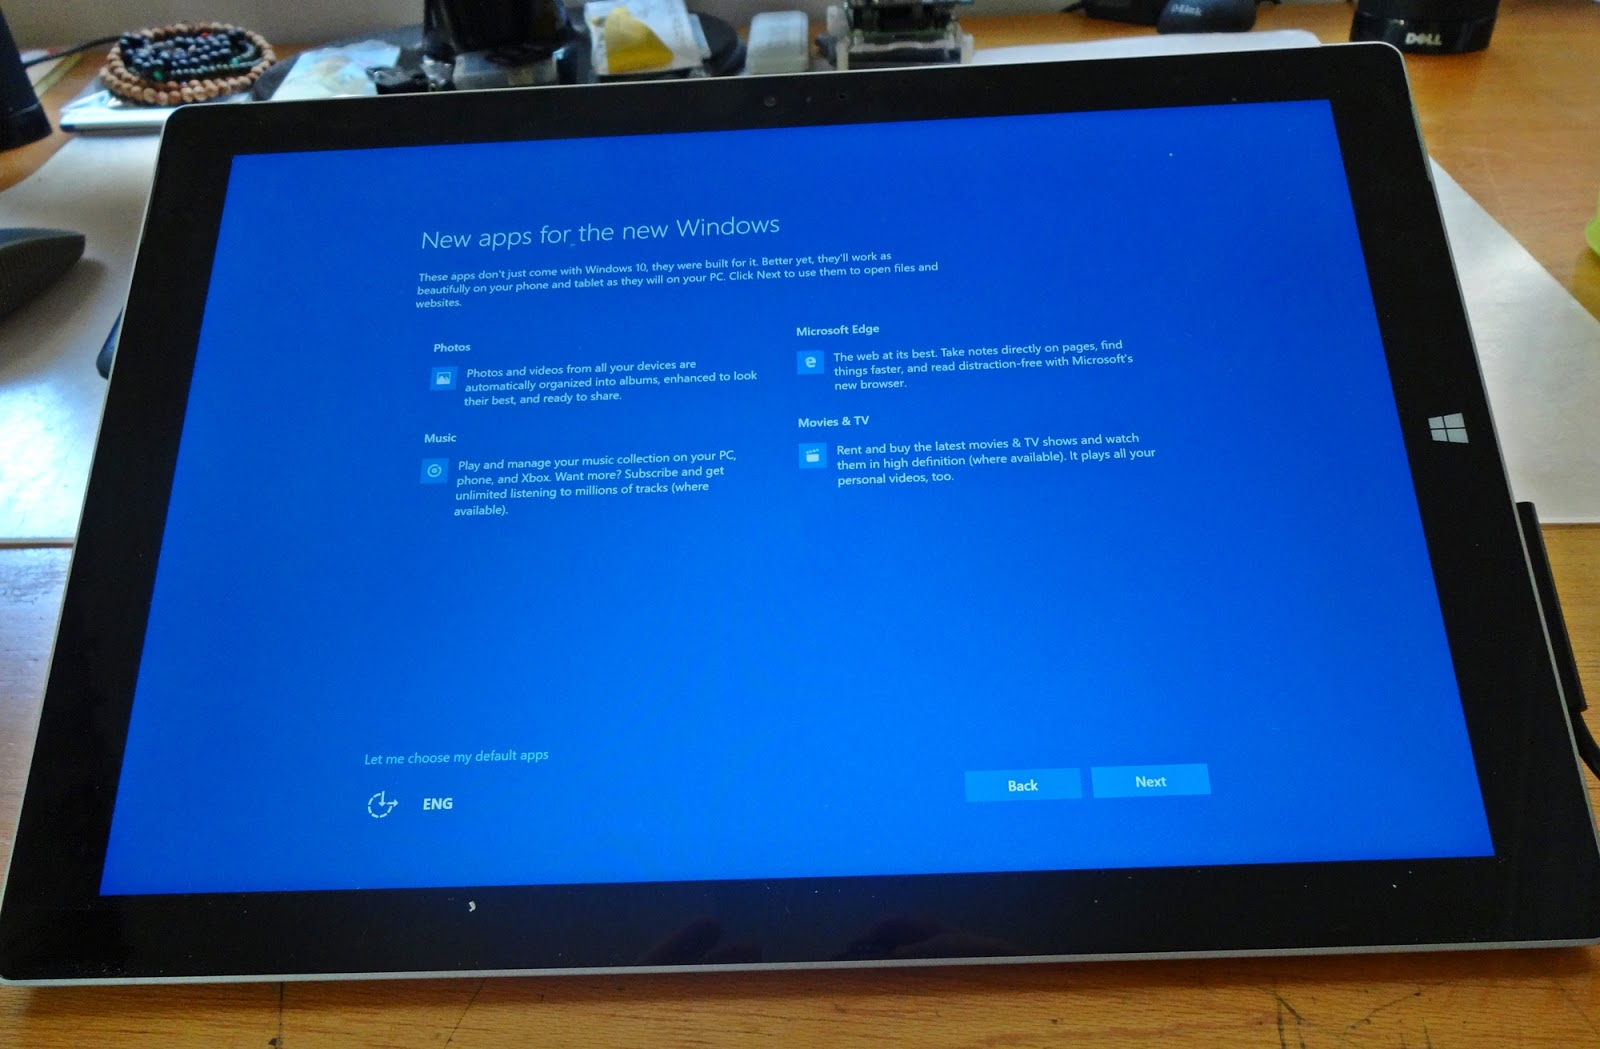 windows-10-upgrade-surface-pro-3